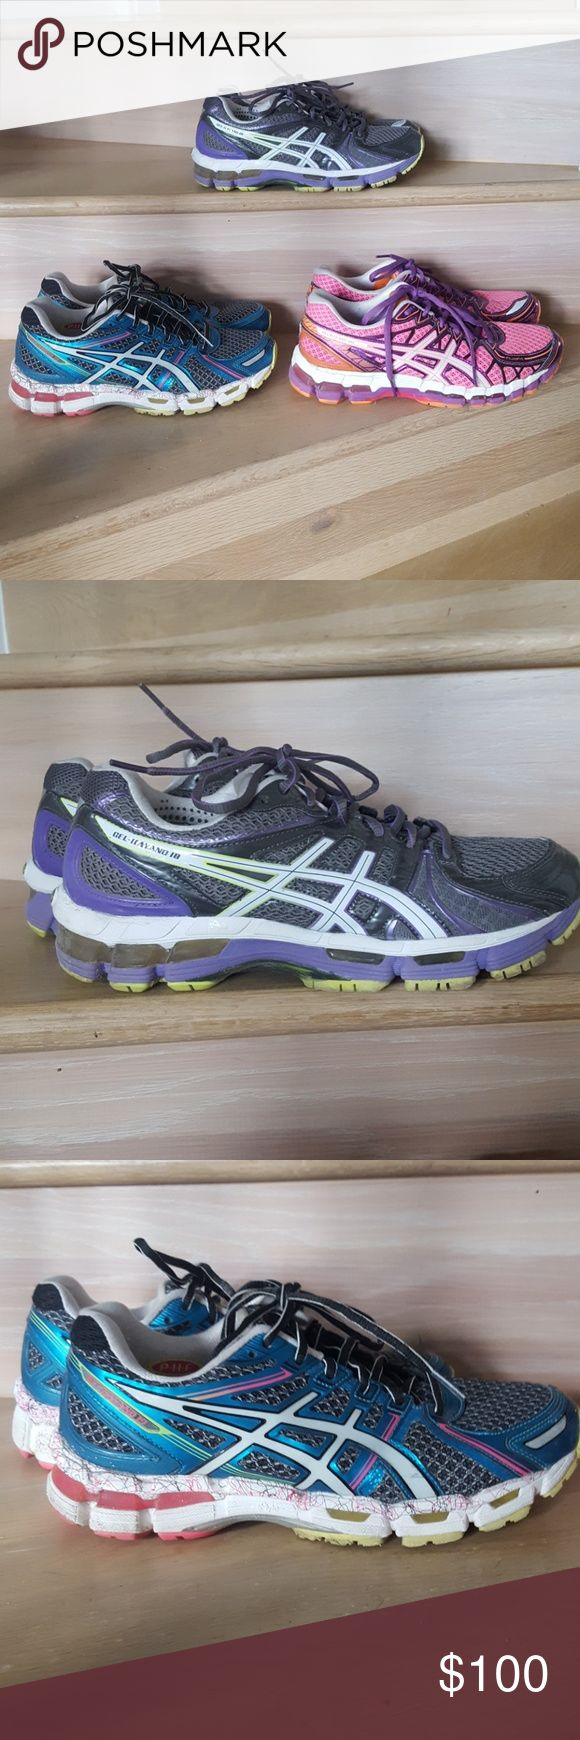 Asics GEL KAYANO 18,19,20 Size  9 BUNDLE 3 pairs of Gel Kayano s. Individual selling for $ 45 each. Gently used. These running shoes are top quality. If you are a runner you know.. upgraded to 3 new pairs...Yours in a bundle for $100!!! I changed out the soles in the purple, Gray for gel soles but can t find the original soles in my closet. If I find them I will include. The other 2 have original insoles. Asics Shoes Sneakers